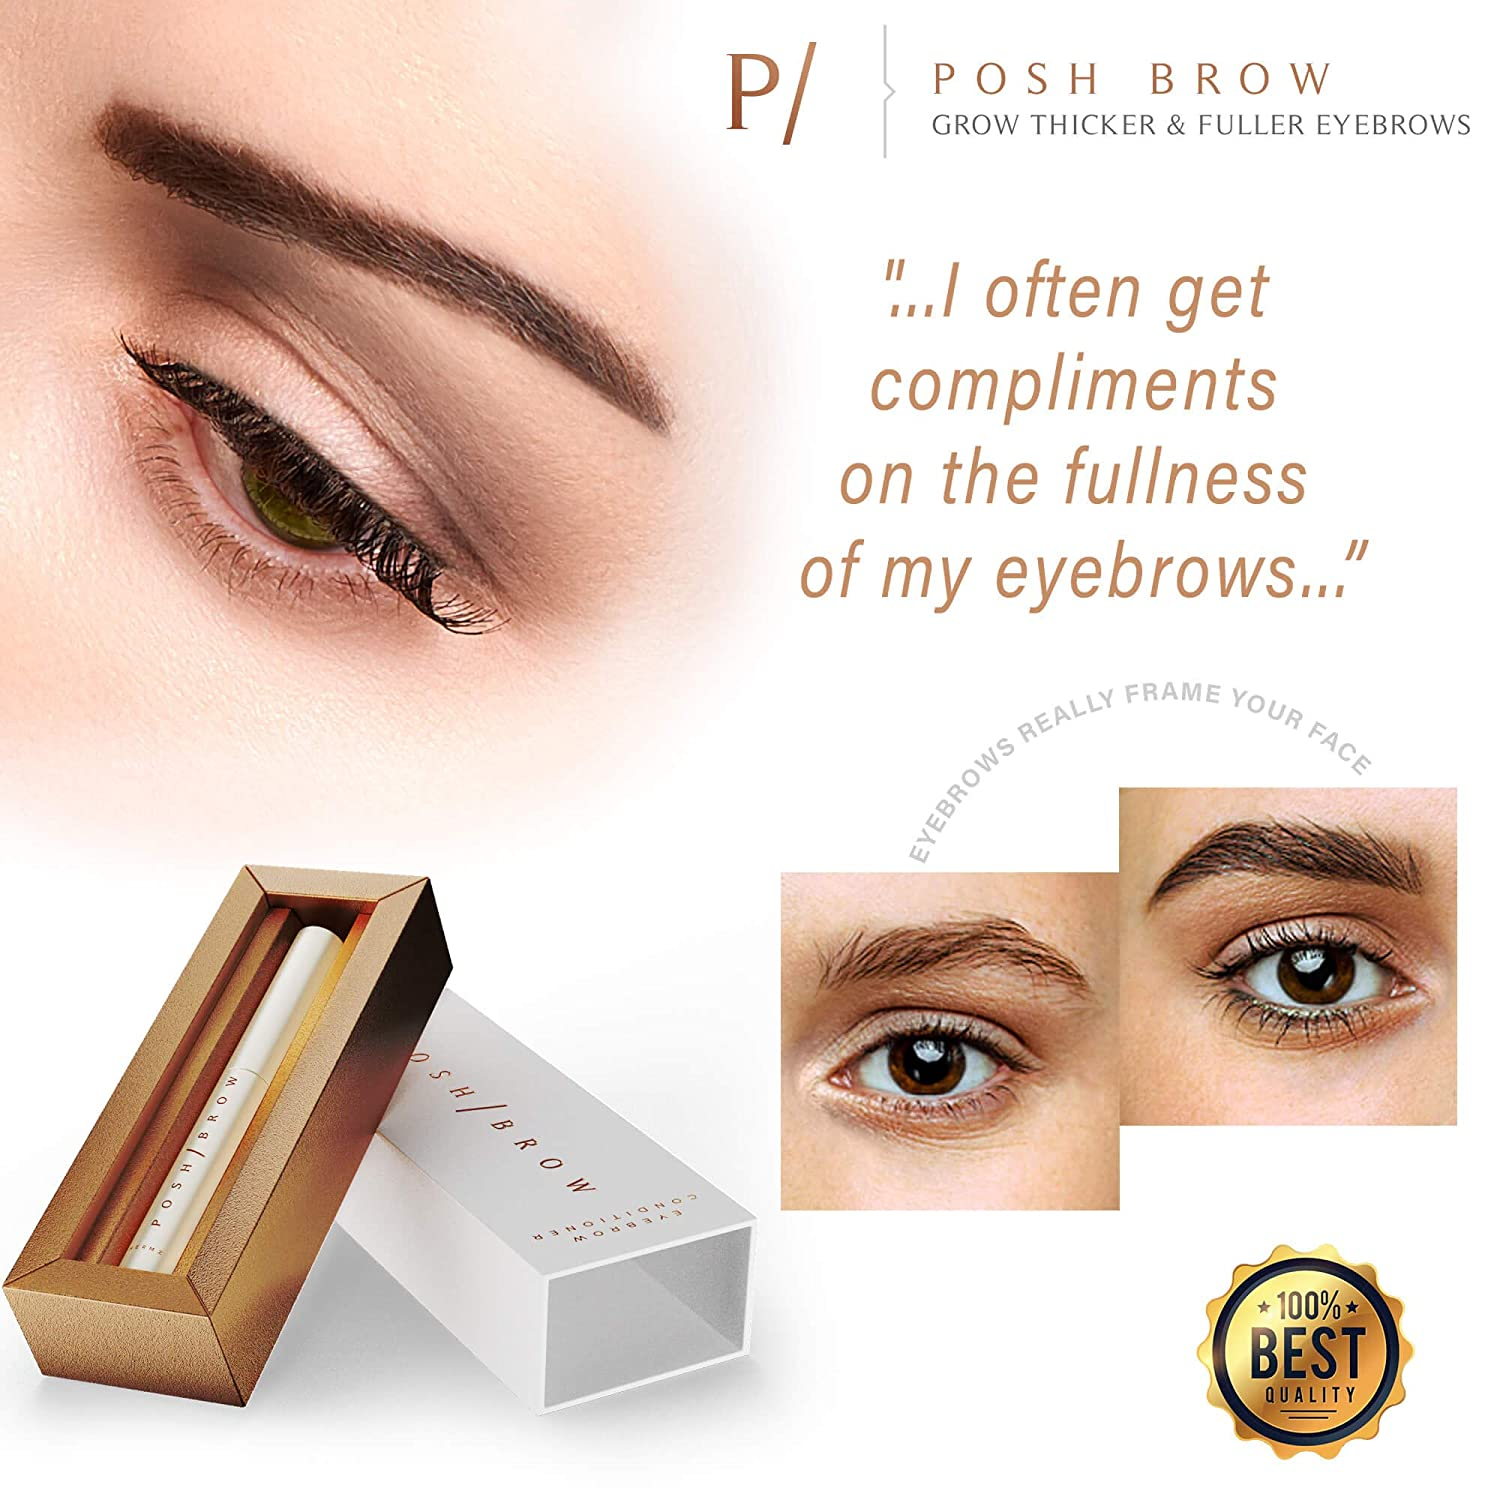 Posh Brow Eyebrow Conditioner 5ml High Potency Serum For Longer